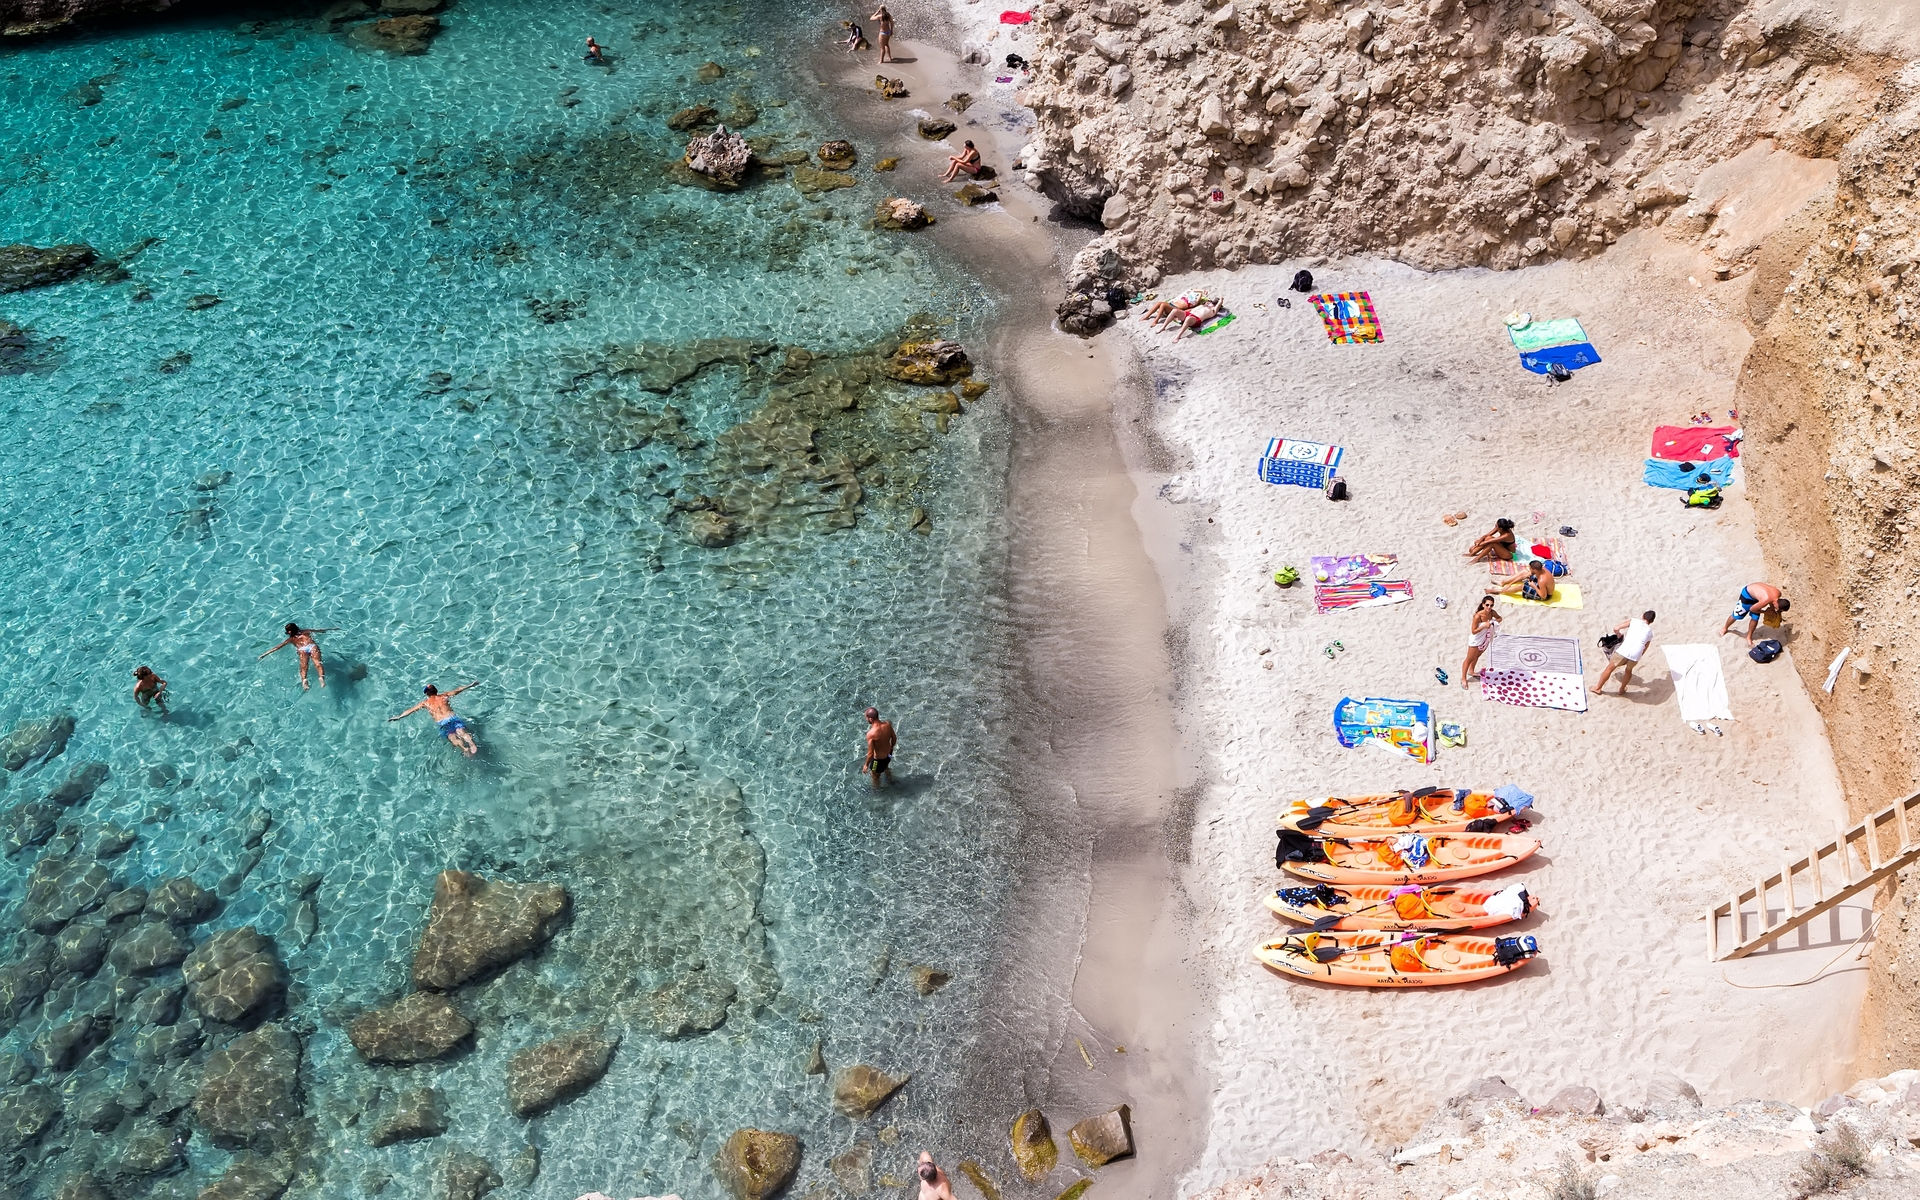 Canoes at tsigrado beach in milos island